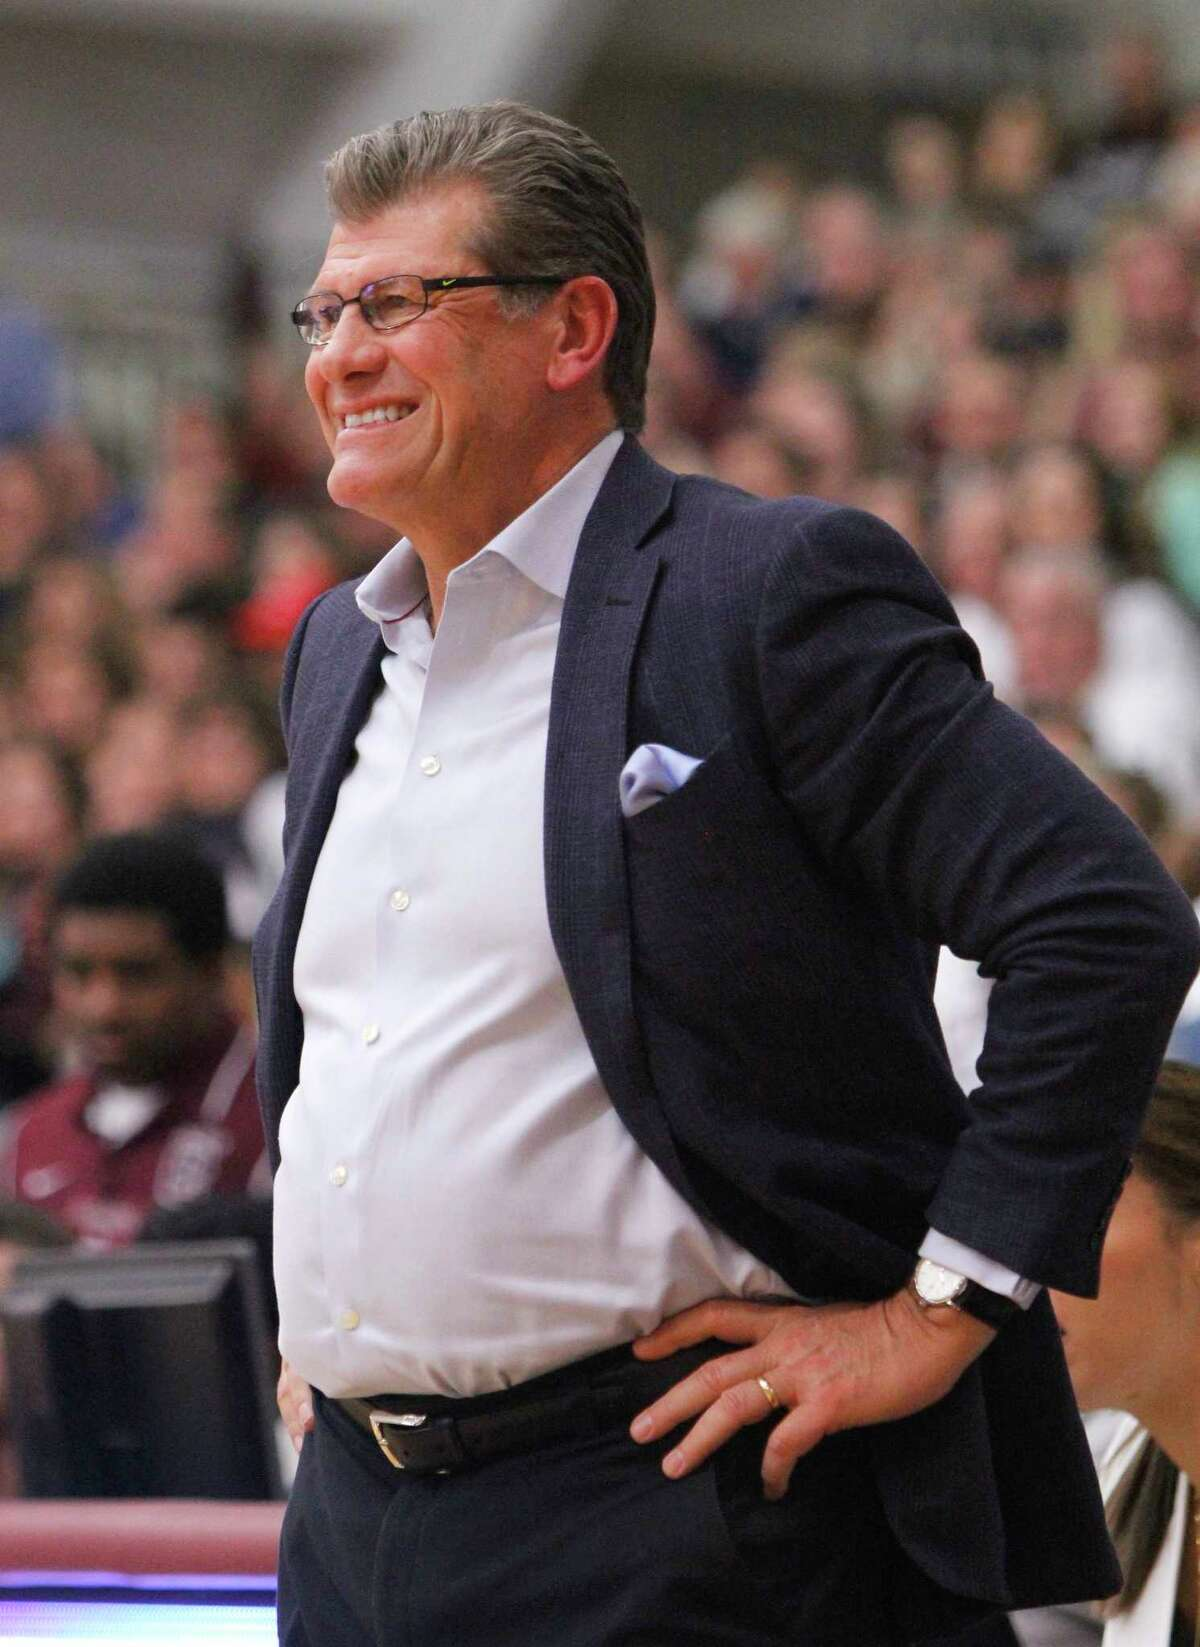 Geno Auriemma and UConn seem to be scheduling games against as many top programs as possible.